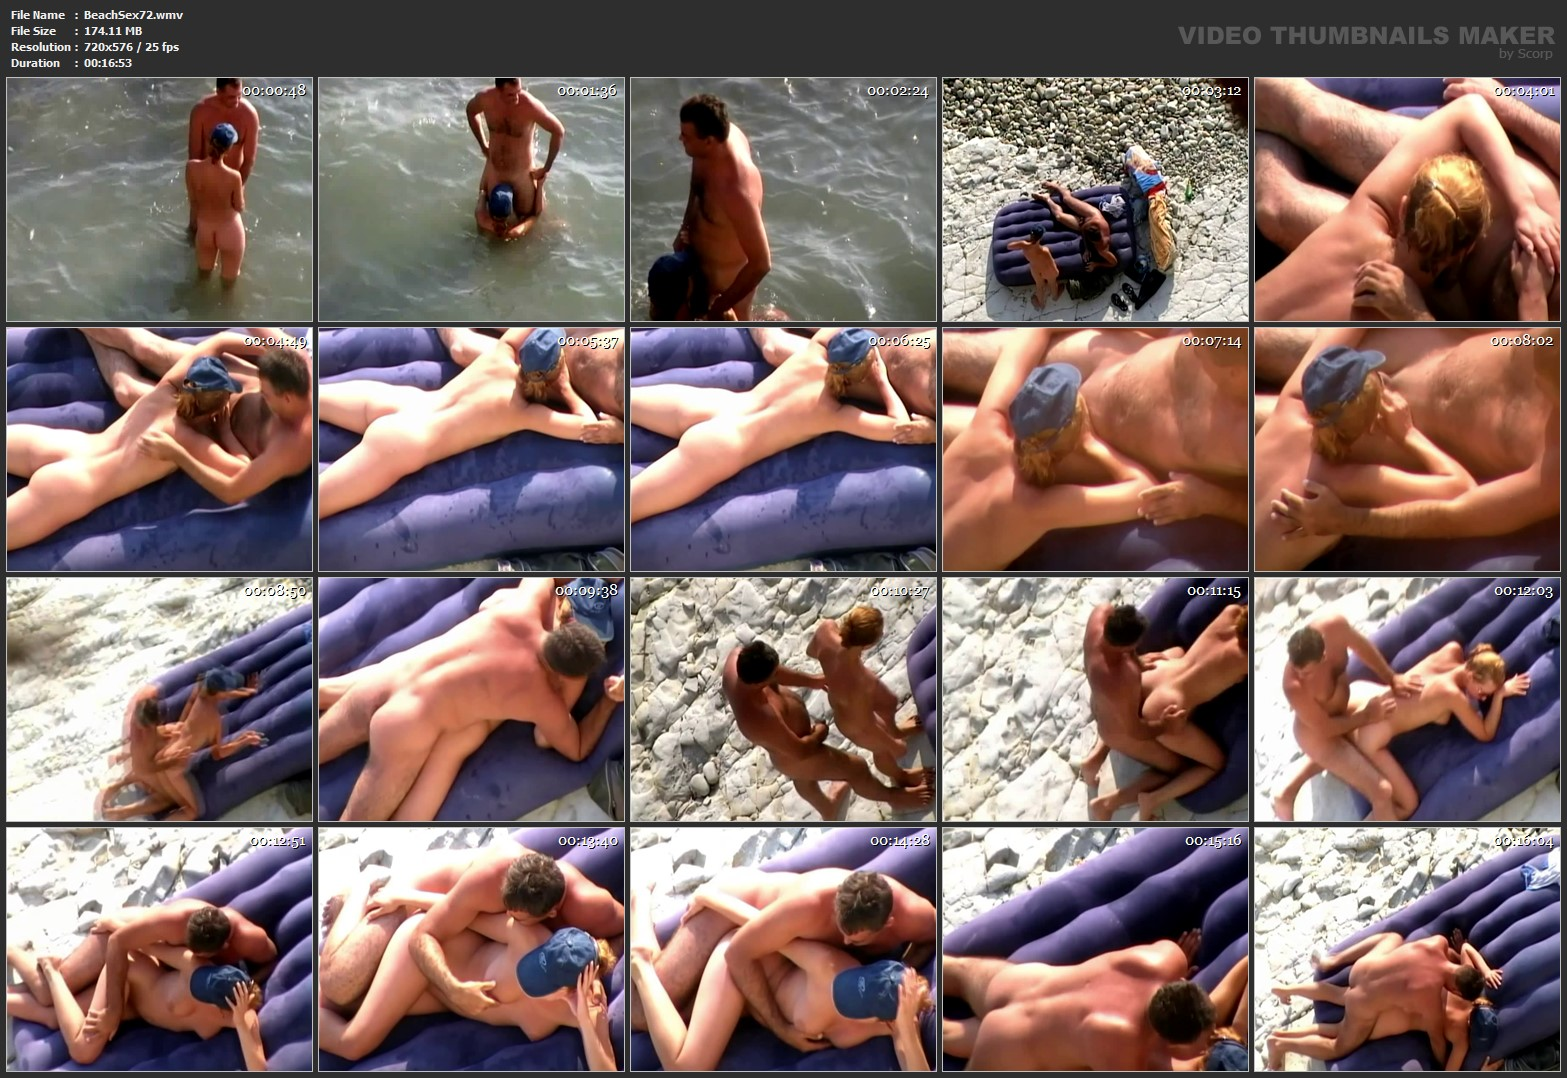 beachsex72-wmv